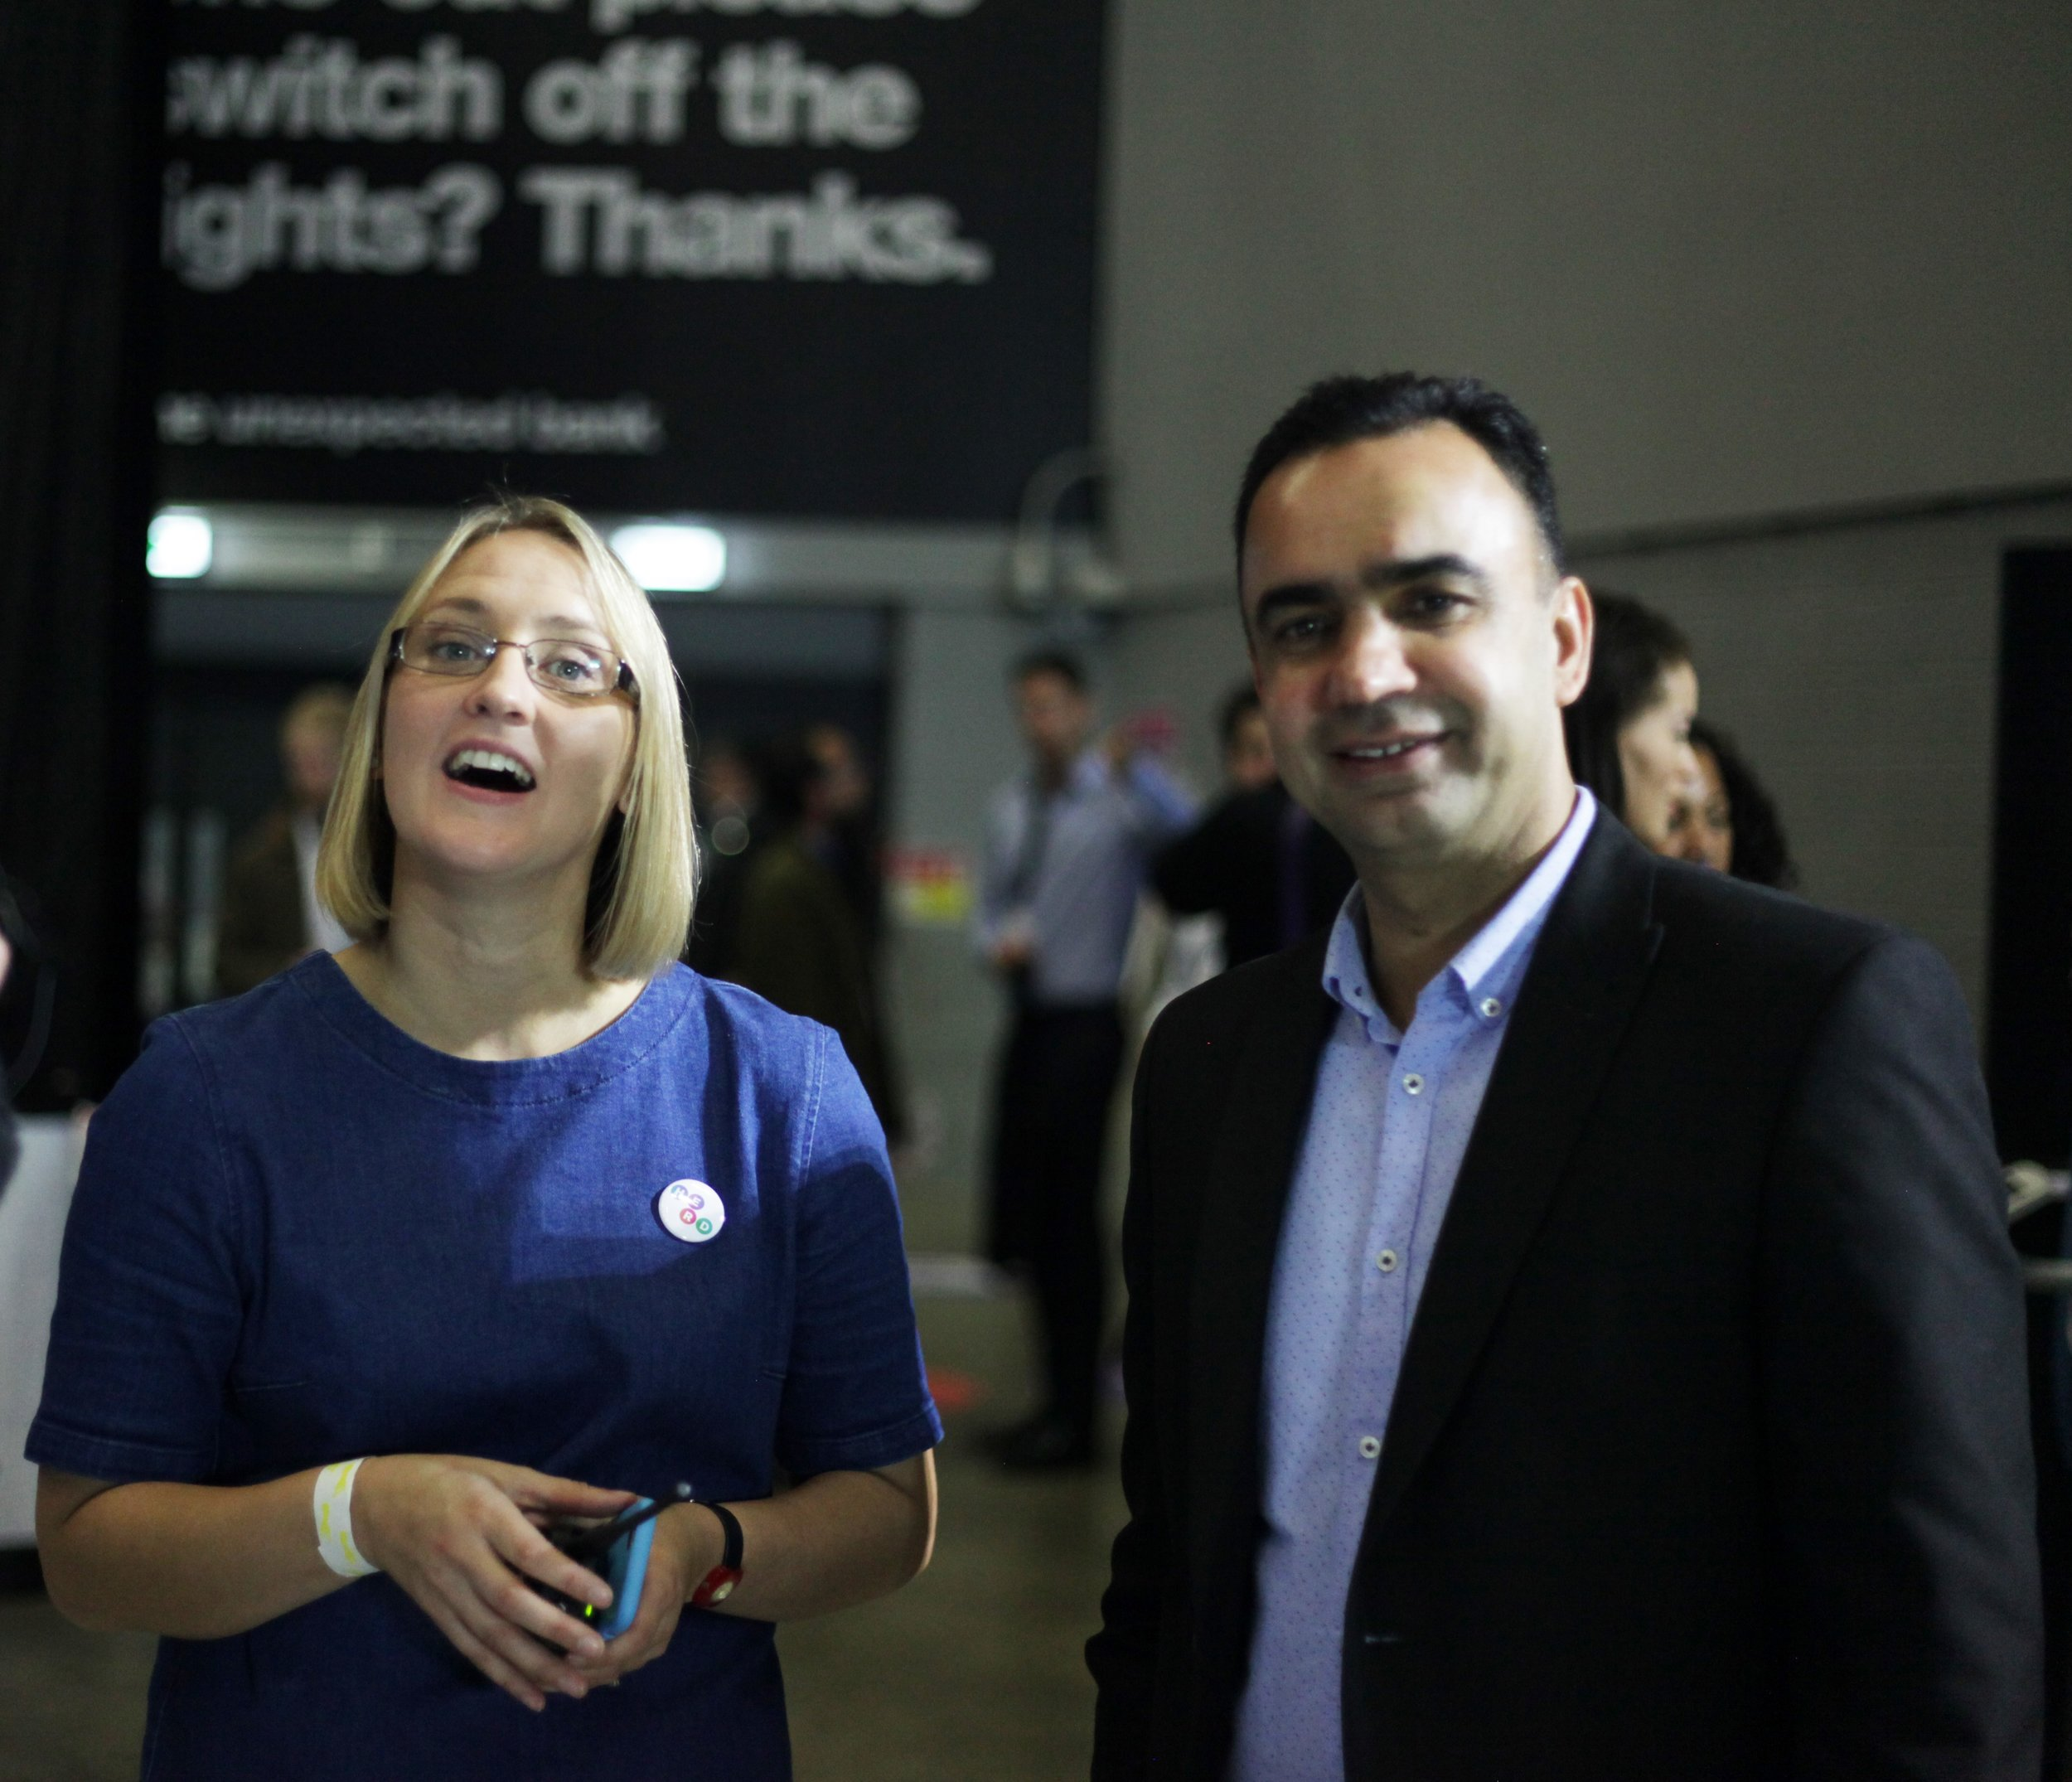 Herd's Amy De-Balsi with (right) Cllr Mohammed Rafique, executive member for employment, enterprise and opportunity, Leeds City Council at Leeds Digital Job Fair 2.0